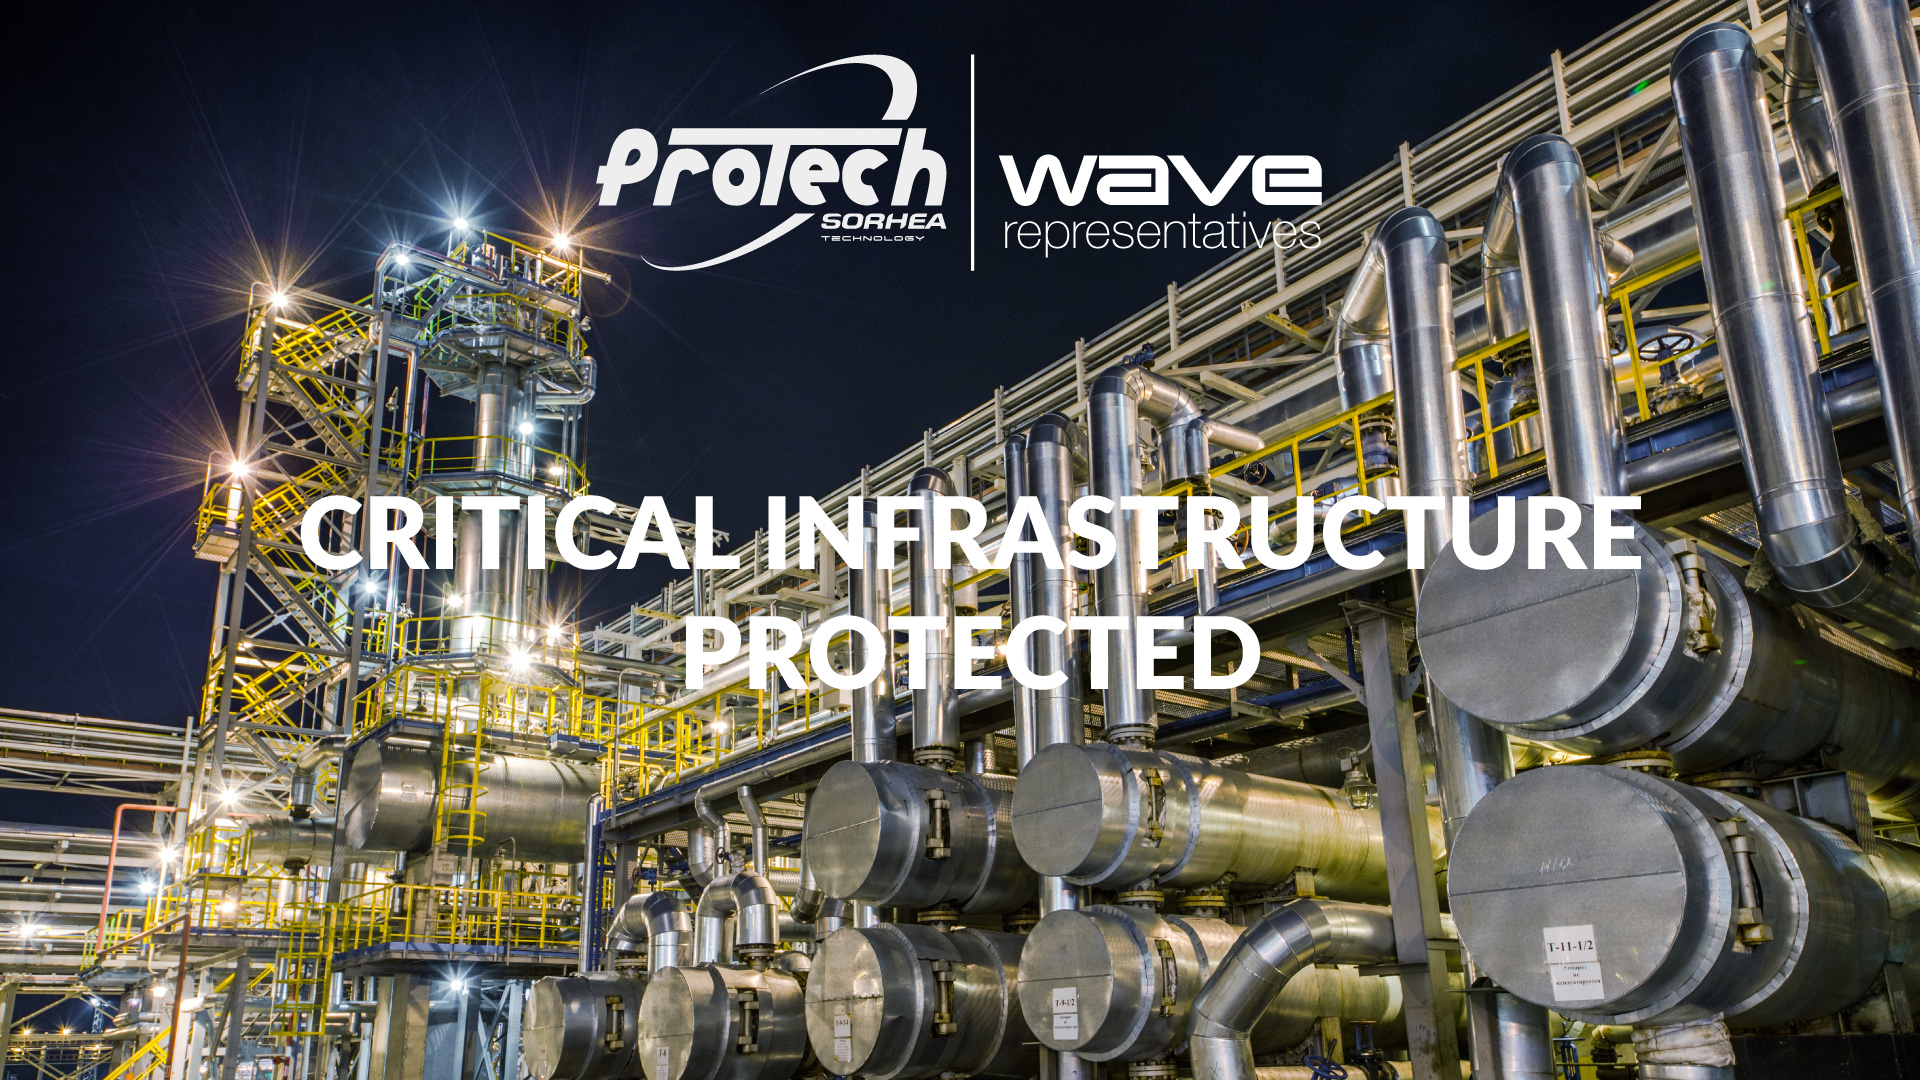 CRITICAL-INFRASTRUCTURE-PROTECH